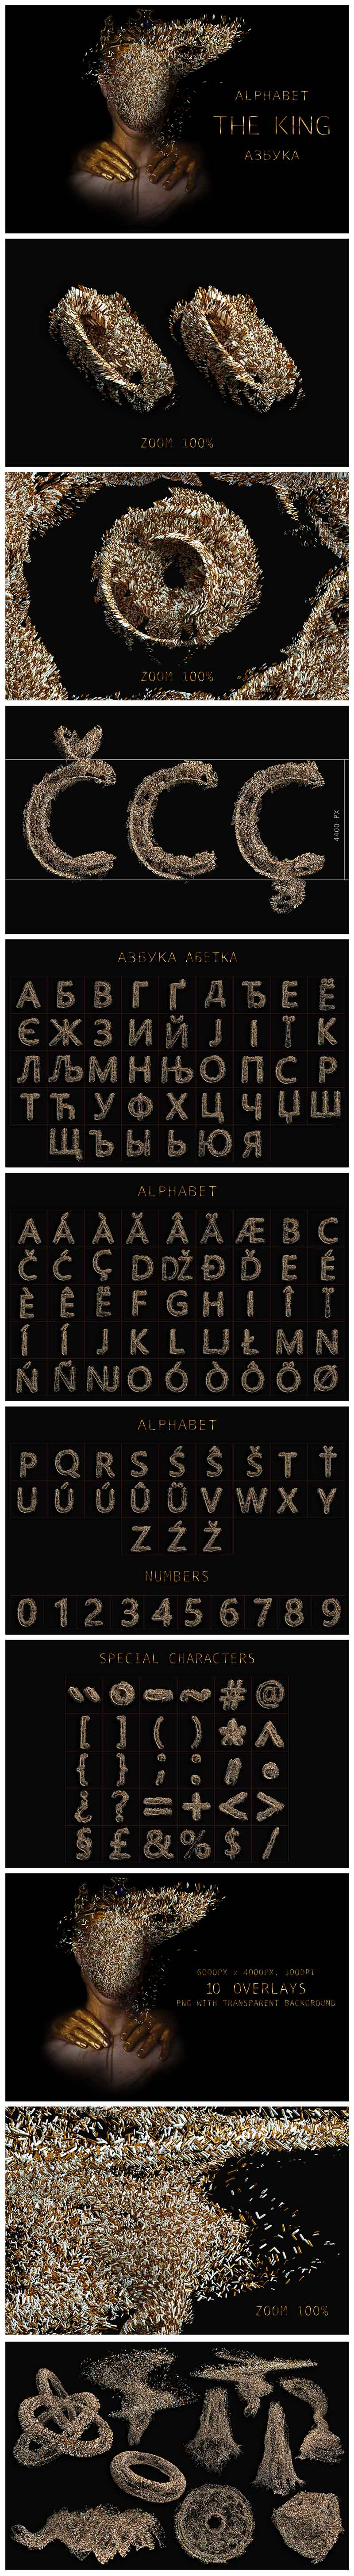 Huge Graphic Bundle Alphabet with 1000+ elements - $25 - The King min